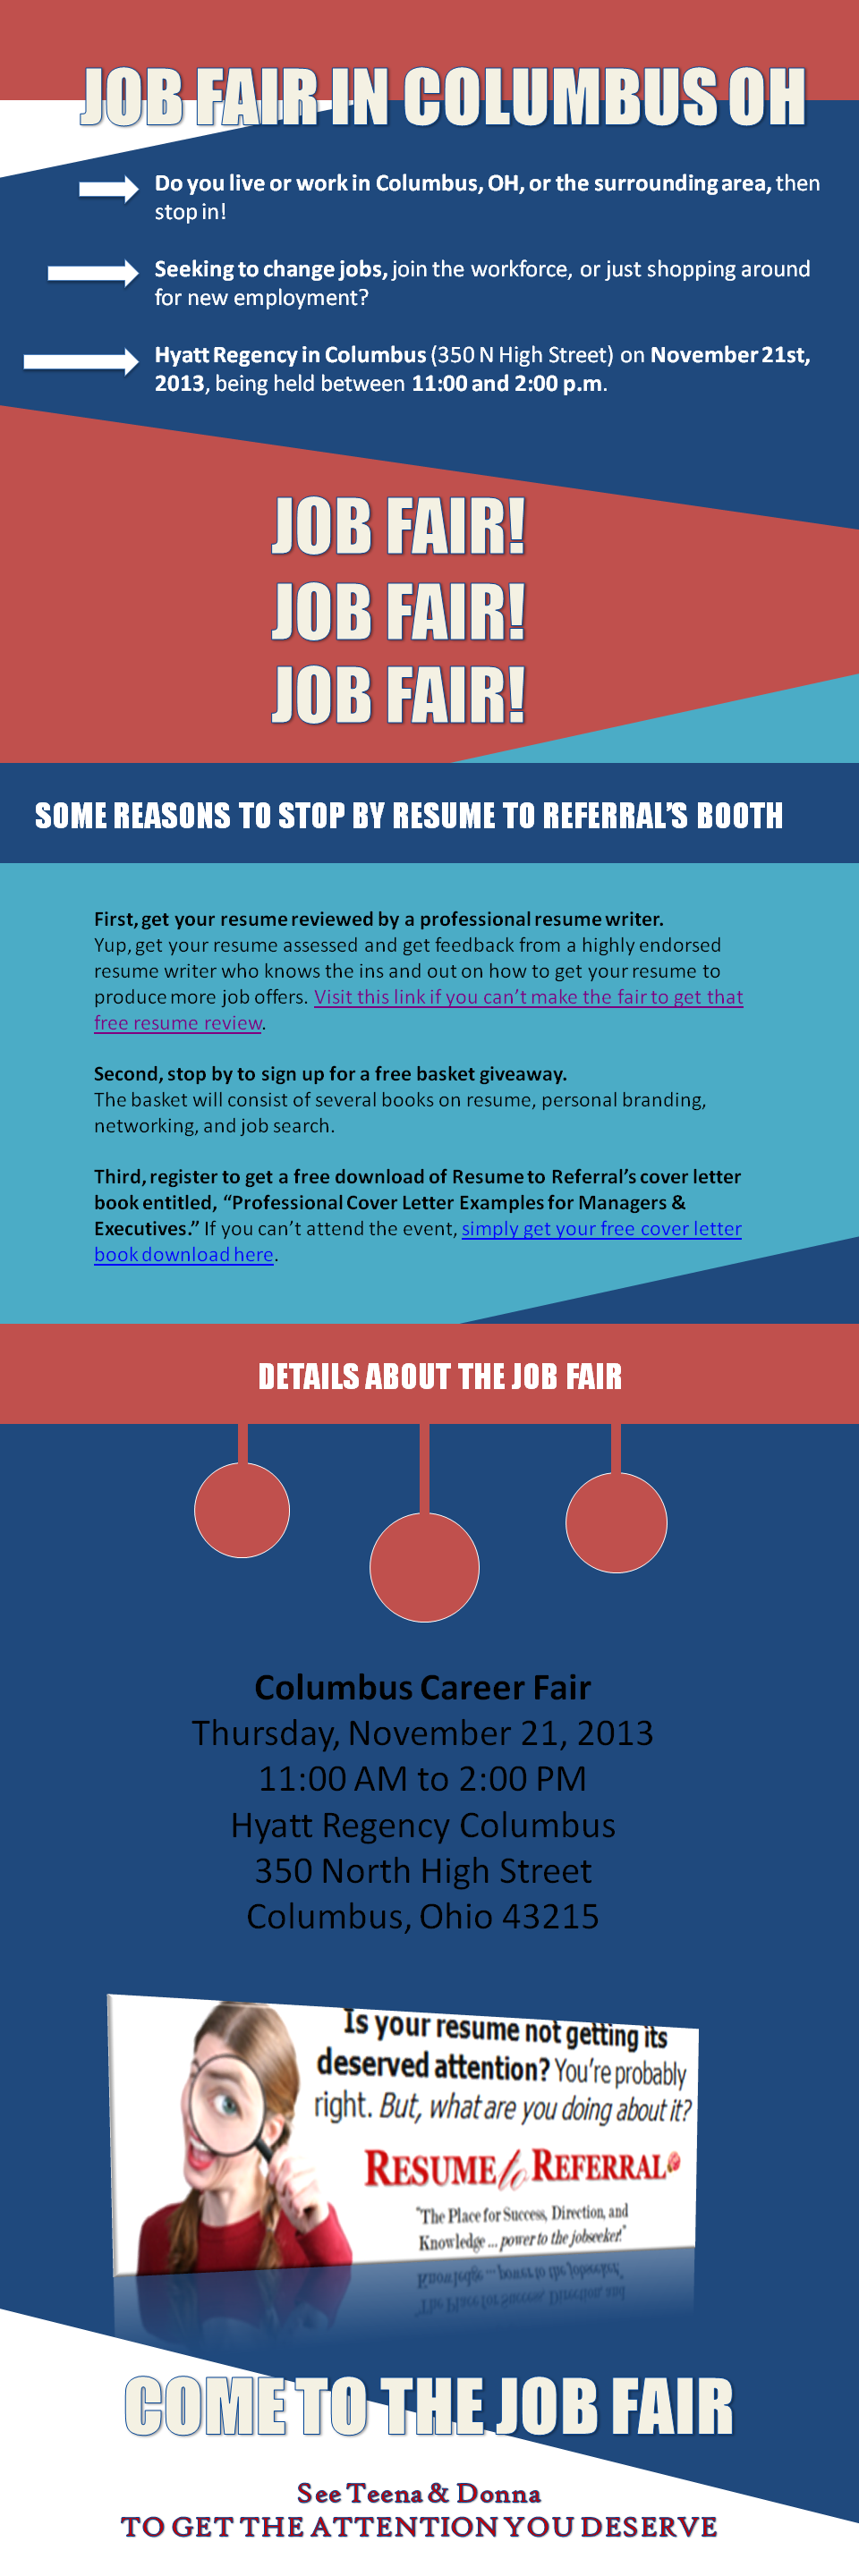 Resume Service Will Be @ Upcoming Job Fair in Columbus, OH | Job ...